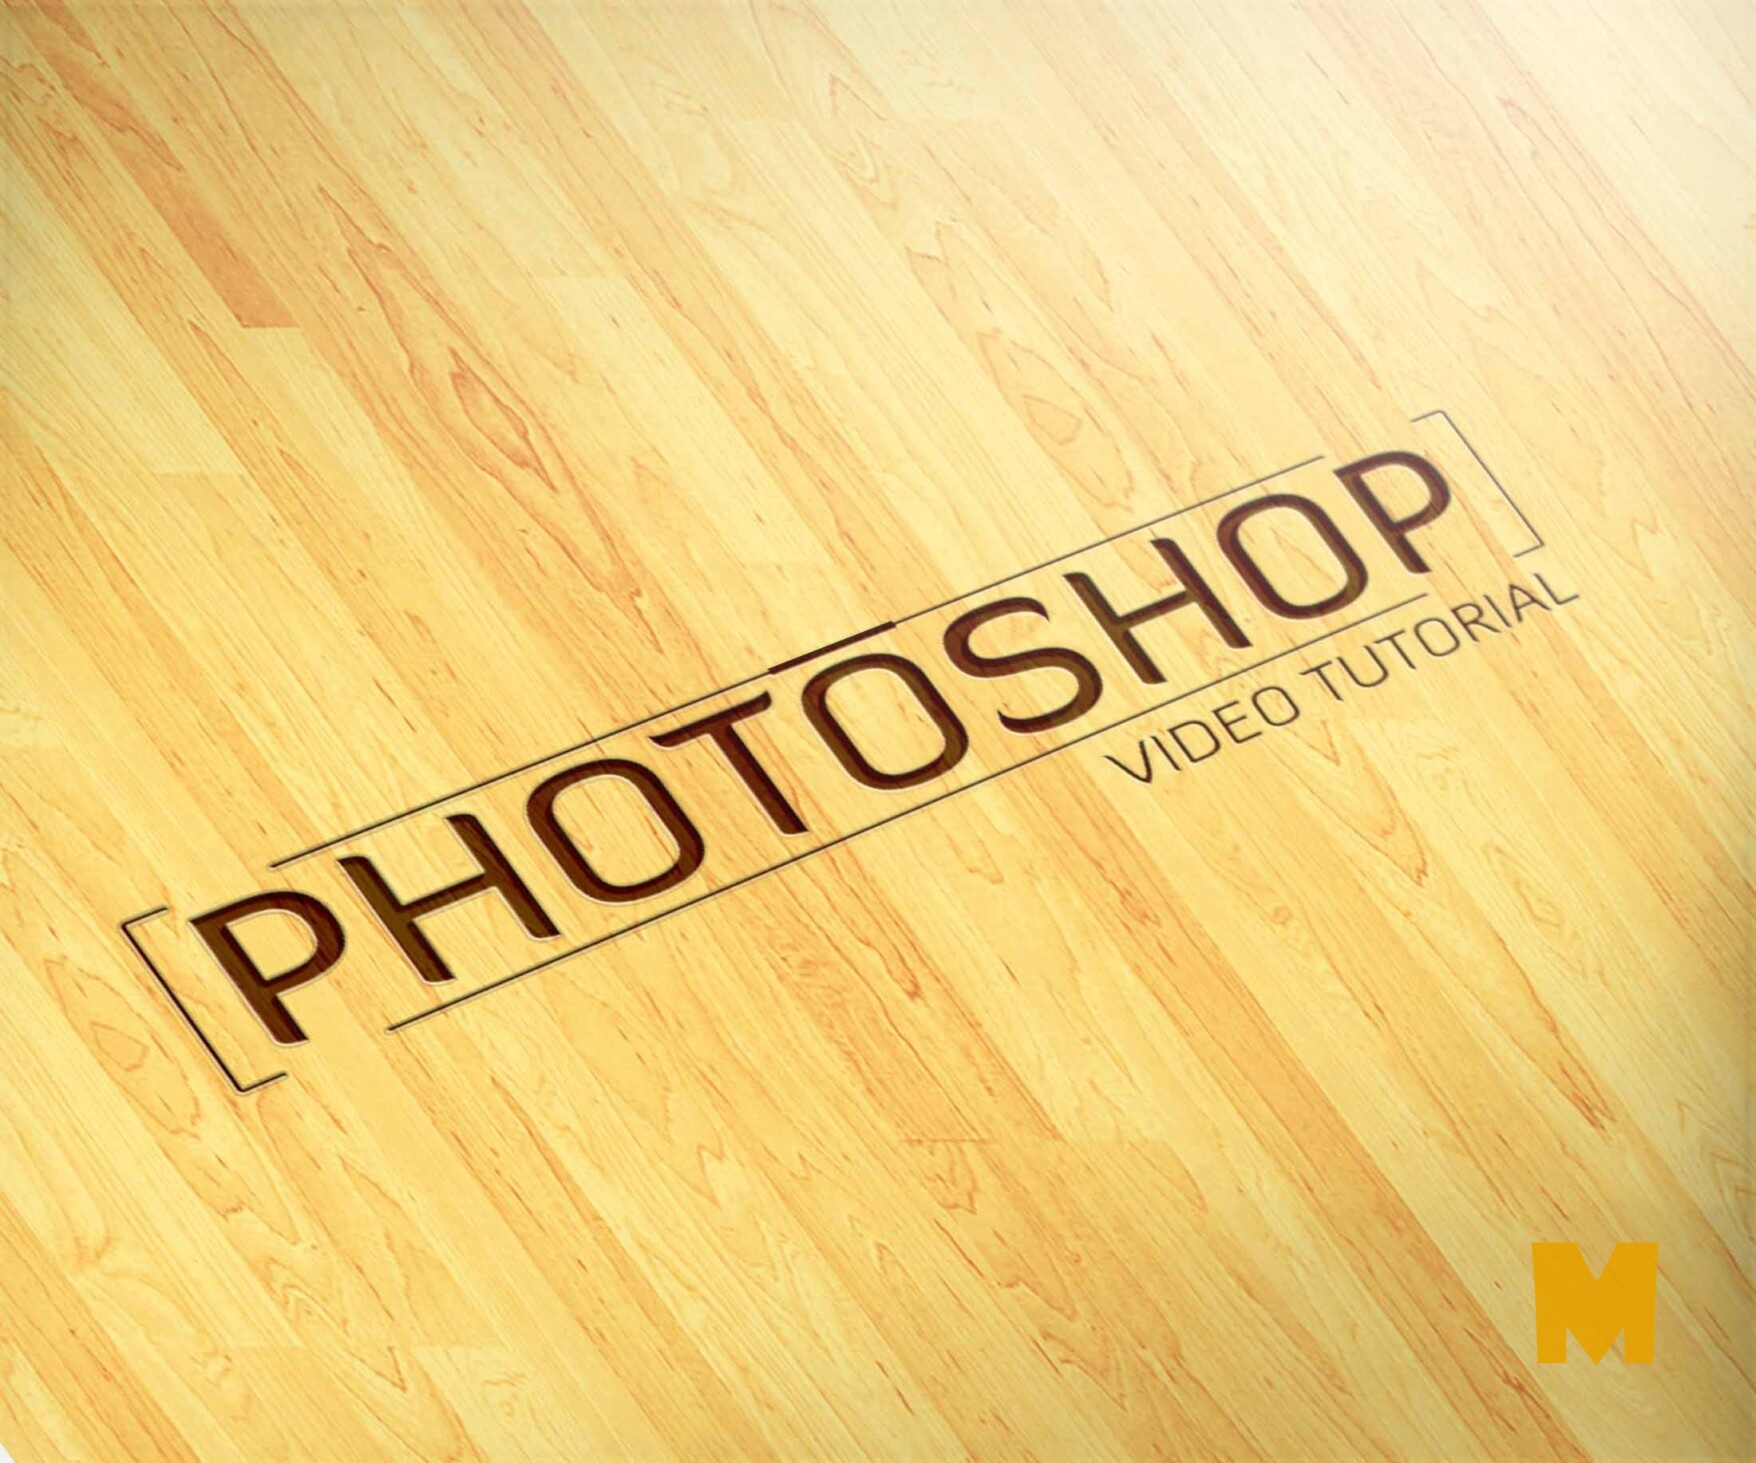 3d mockup in photoshop- photoshopvideotutorial